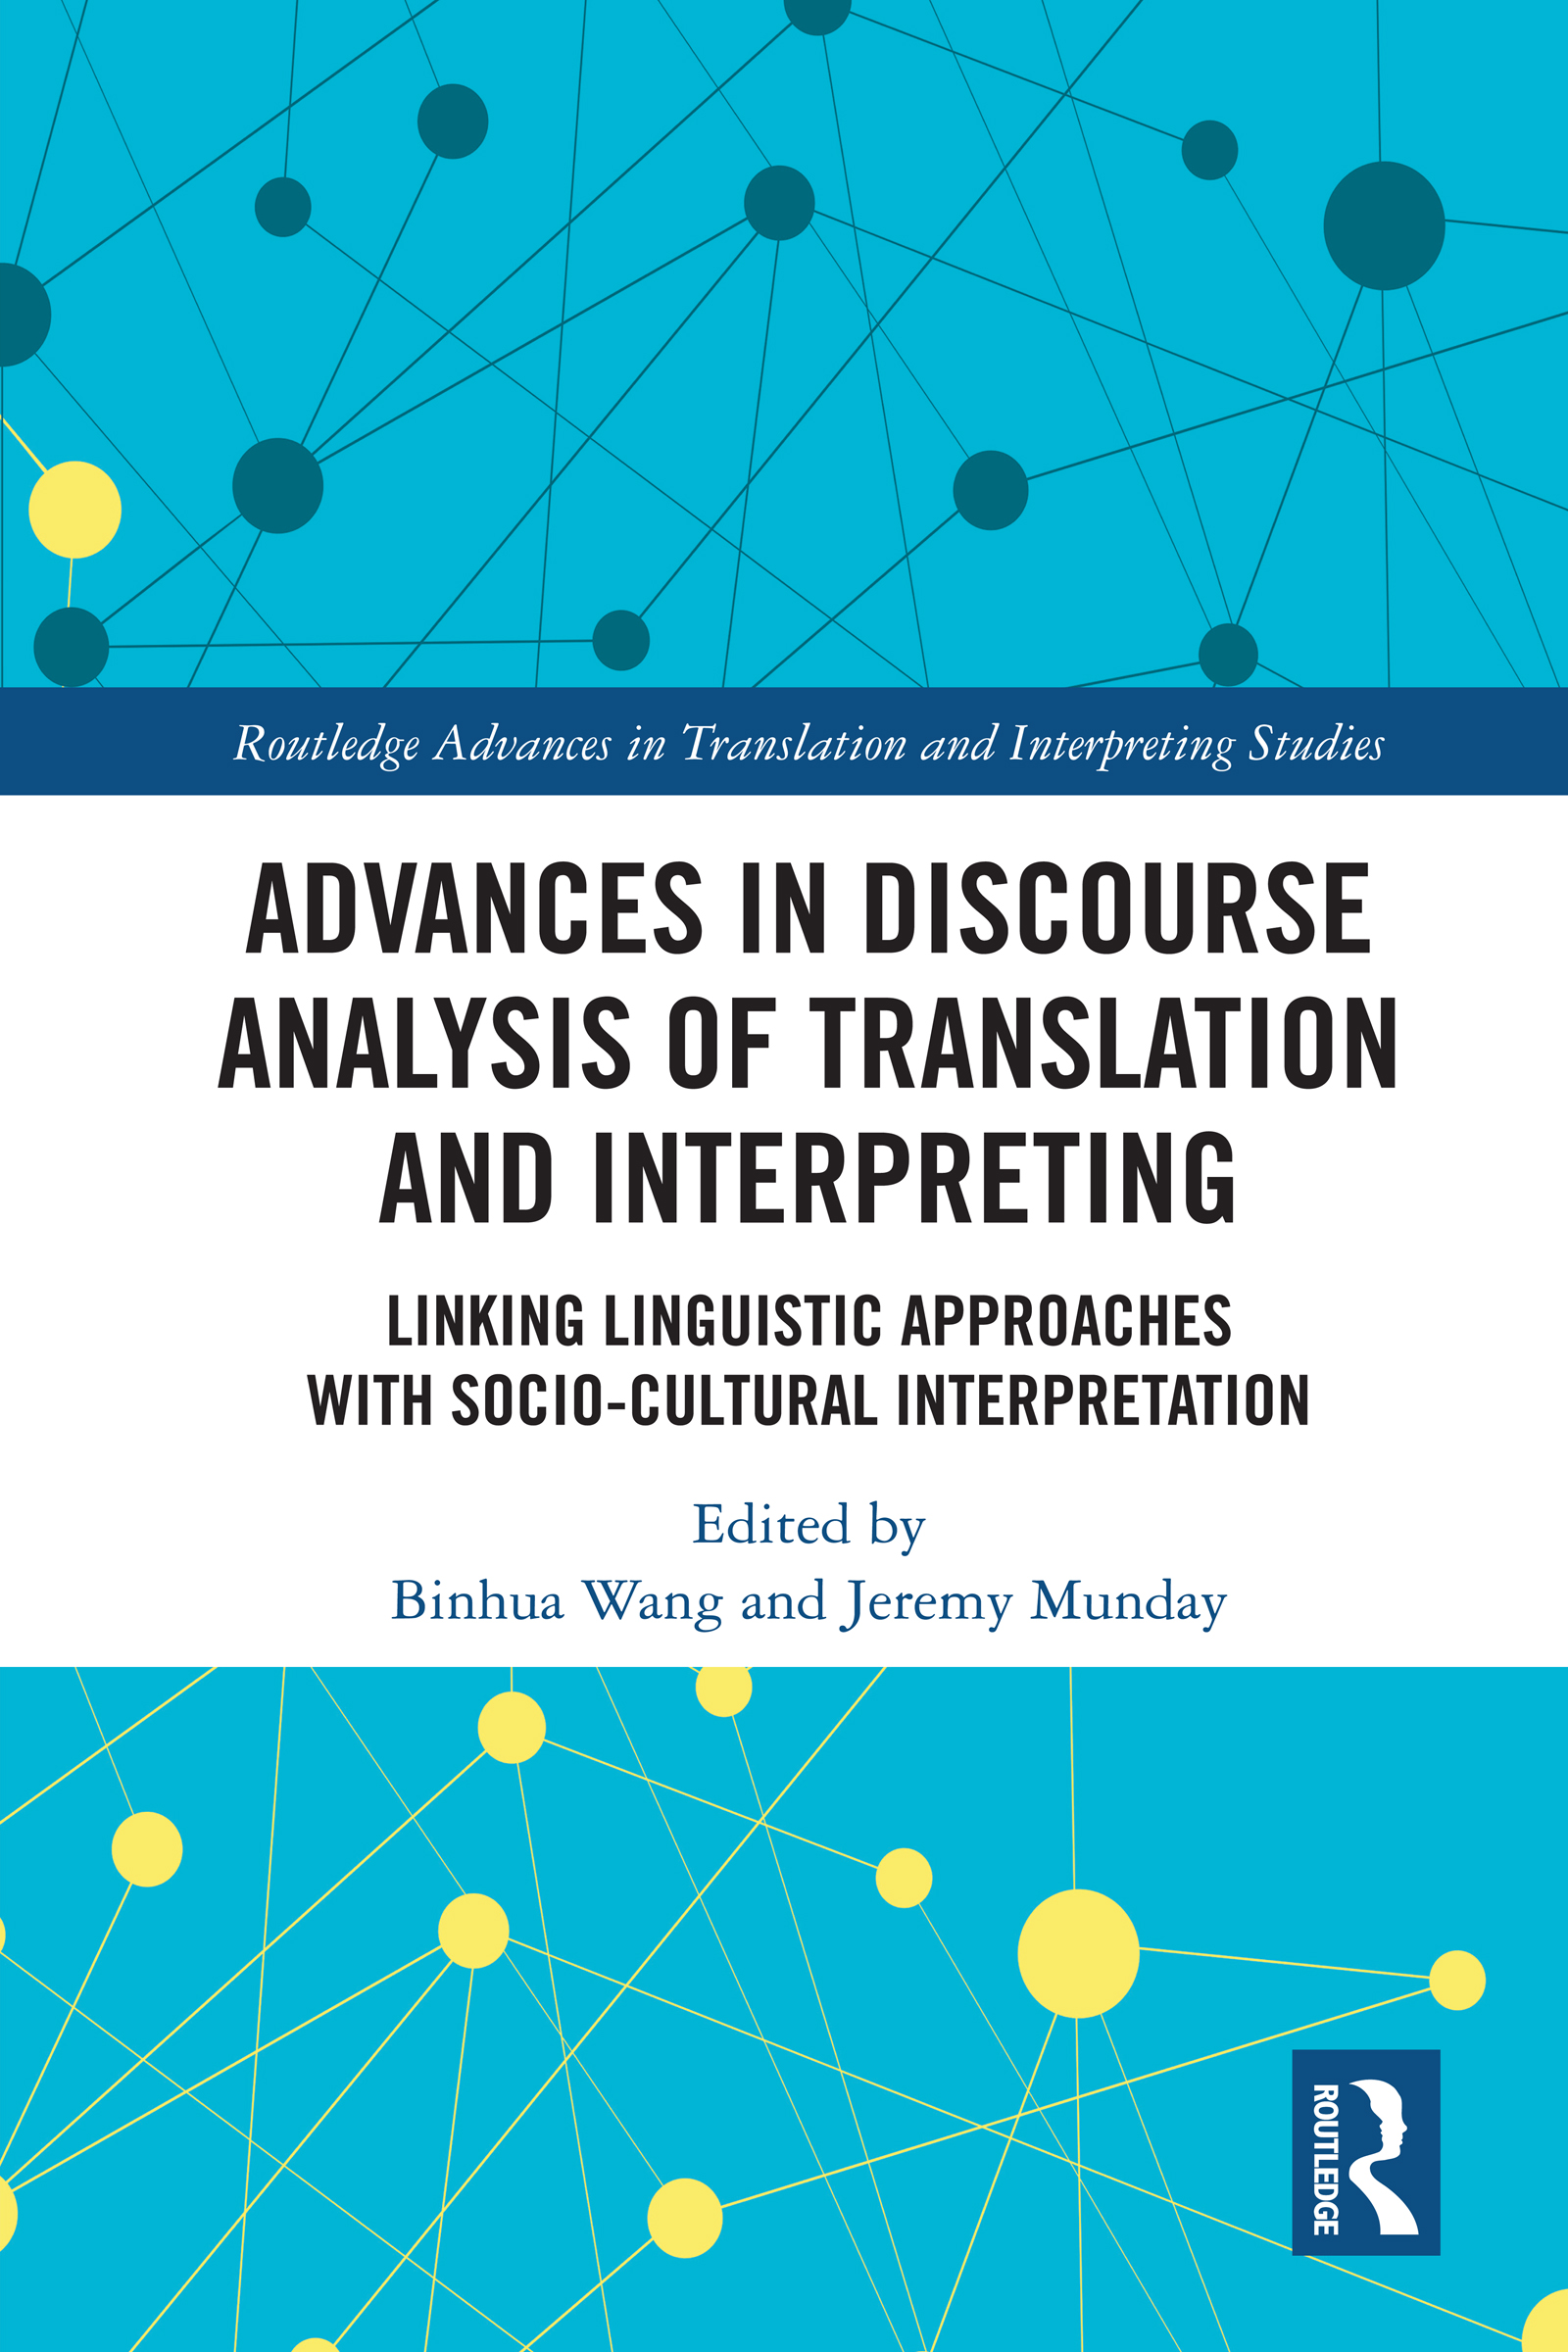 Advances in Discourse Analysis of Translation and Interpreting